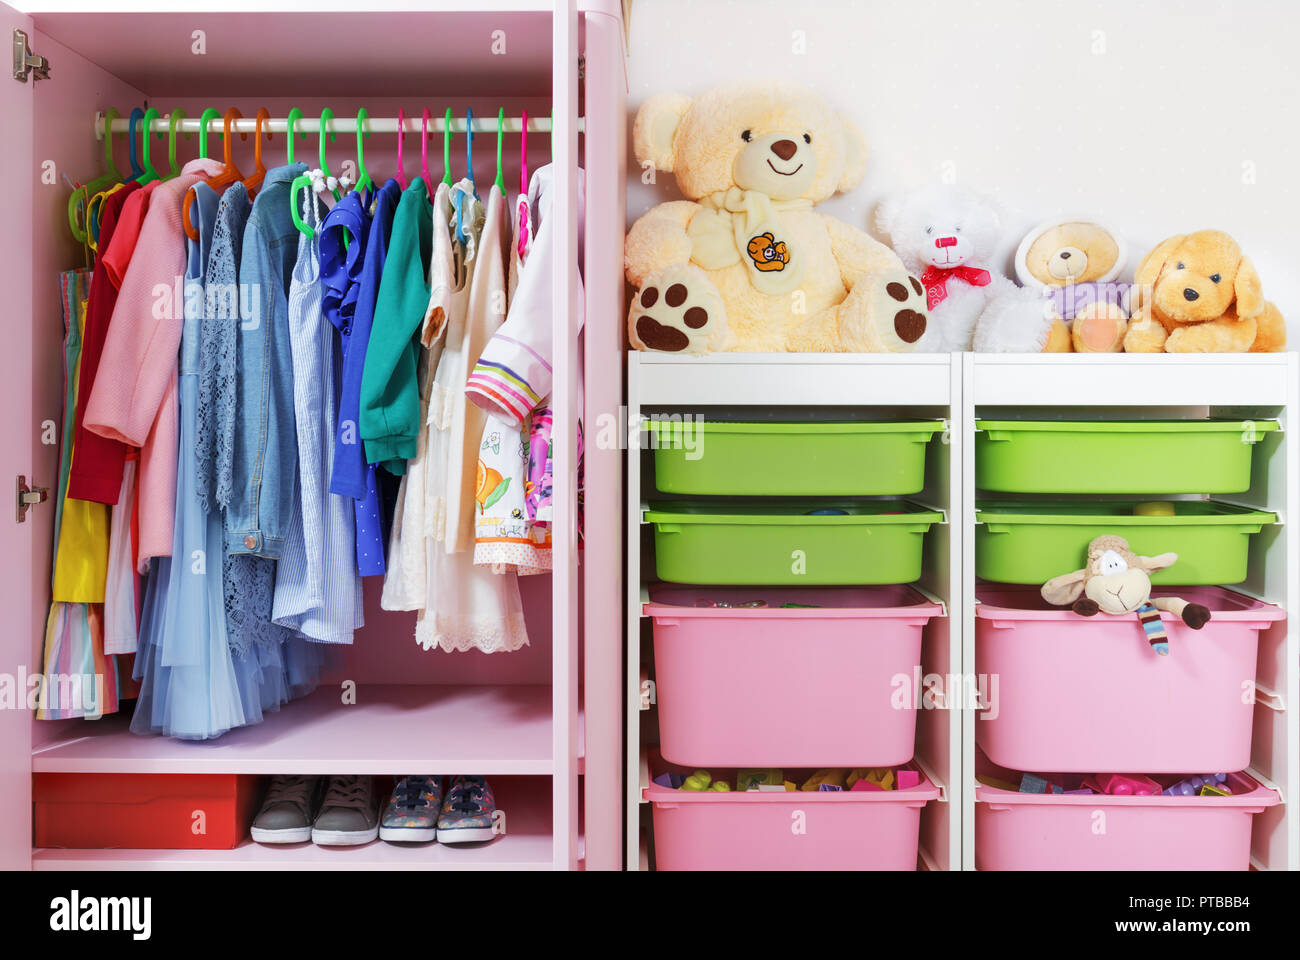 Wardrobe in the children's room. Storage system and storage for the concept of children's things and toys. - Stock Image